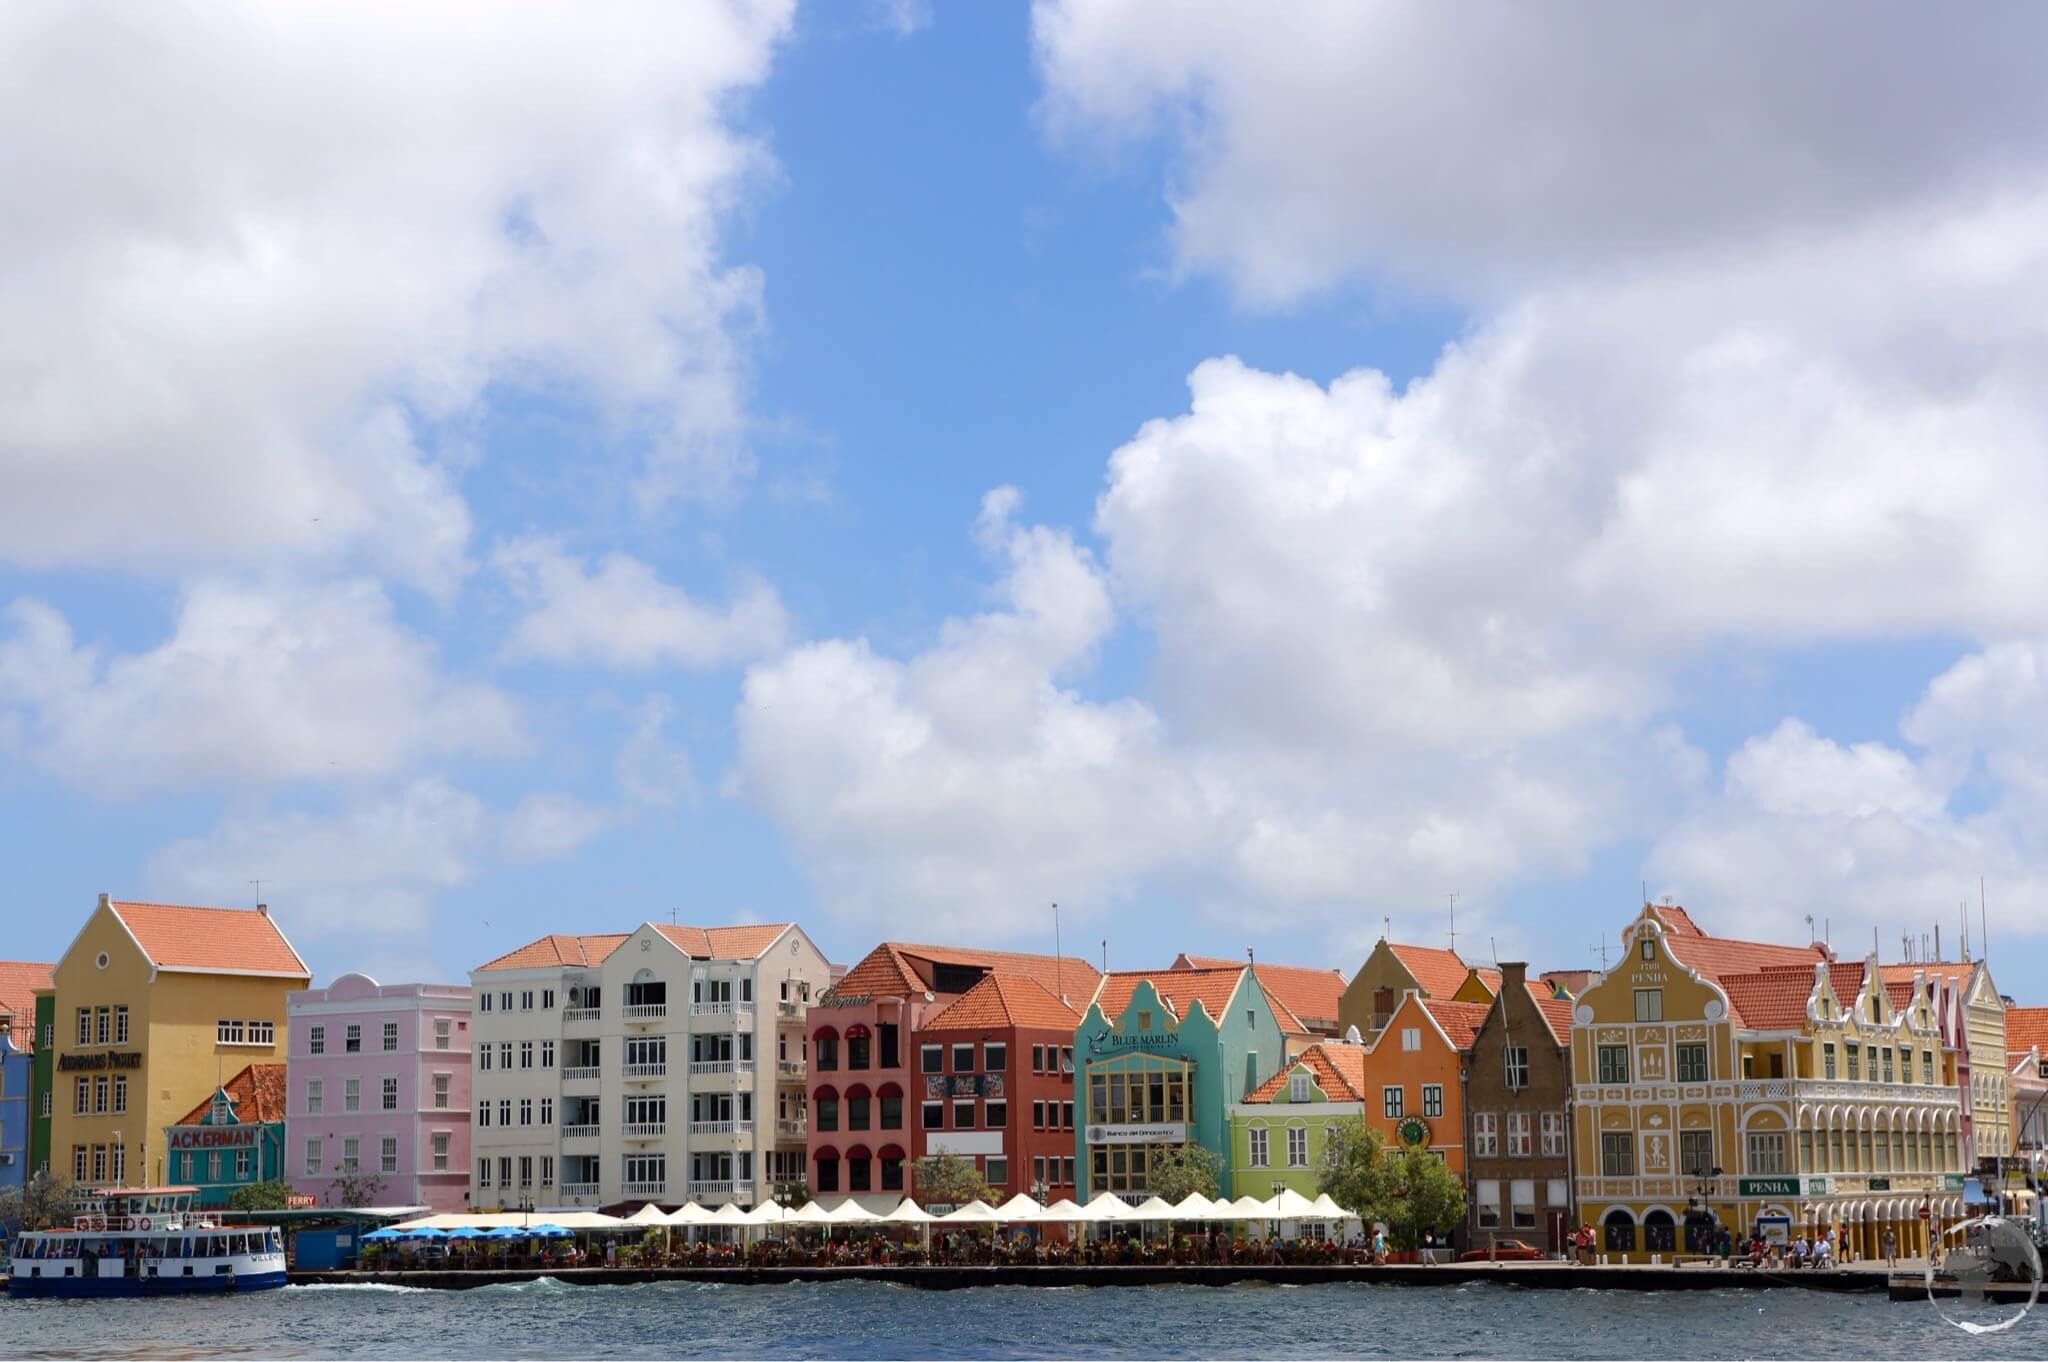 The houses which line the Handelskade form a colourful waterfront in Willemstad.